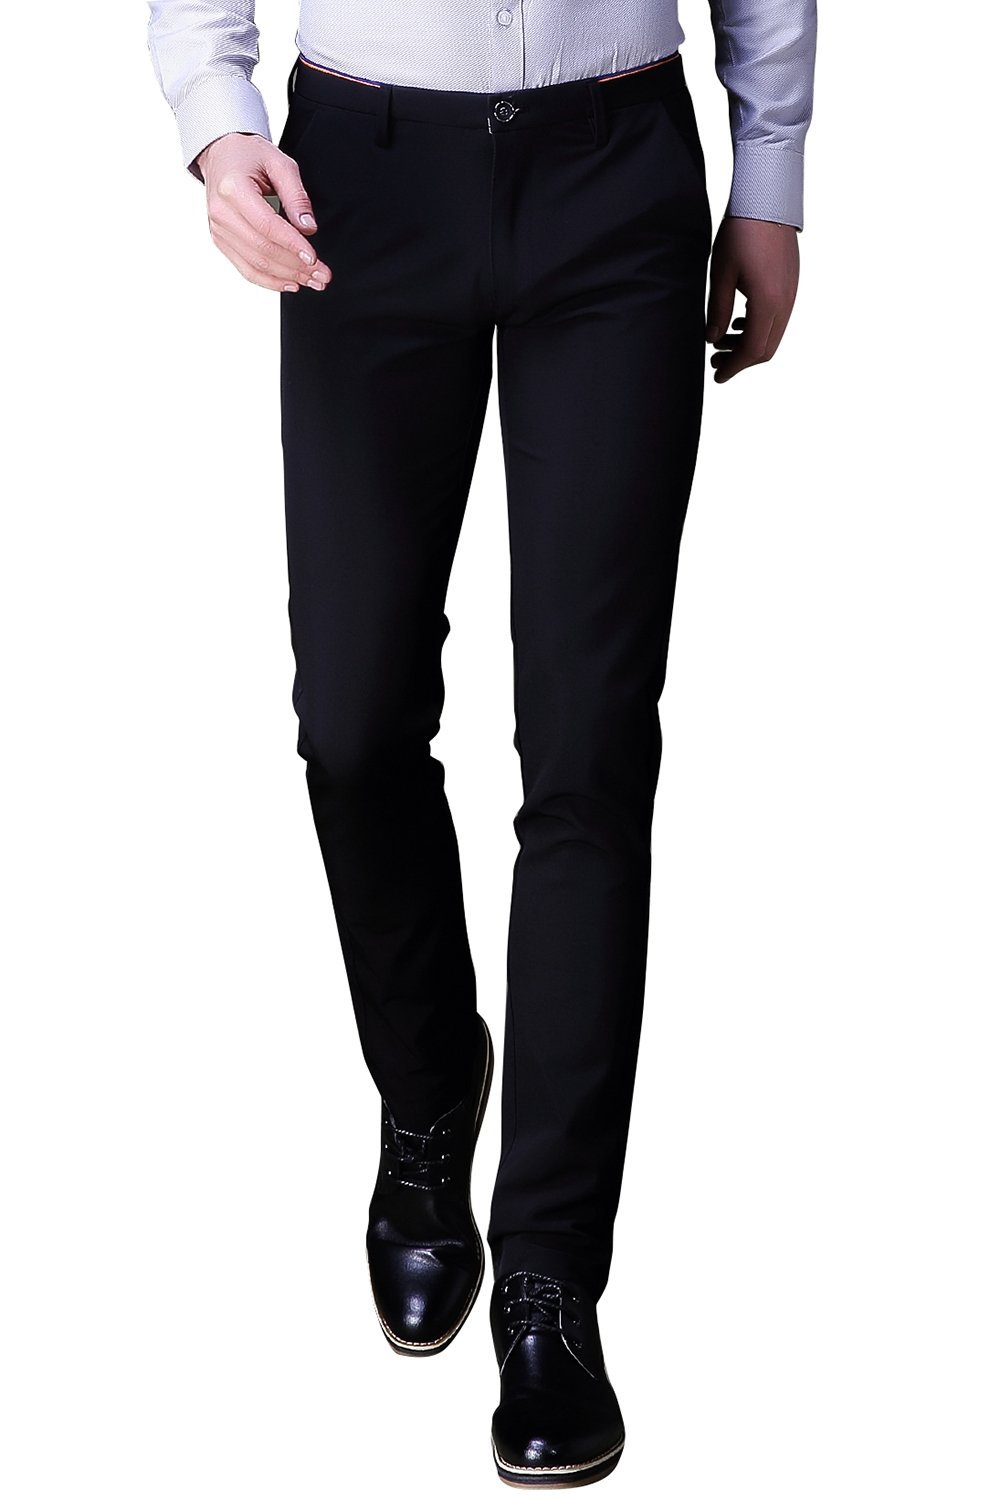 INFLATION Mens Wrinkle-Free Casual Pants Slim-Tapered Stretch Dress Pants,Flat Front Suit Pants Black by INFLATION